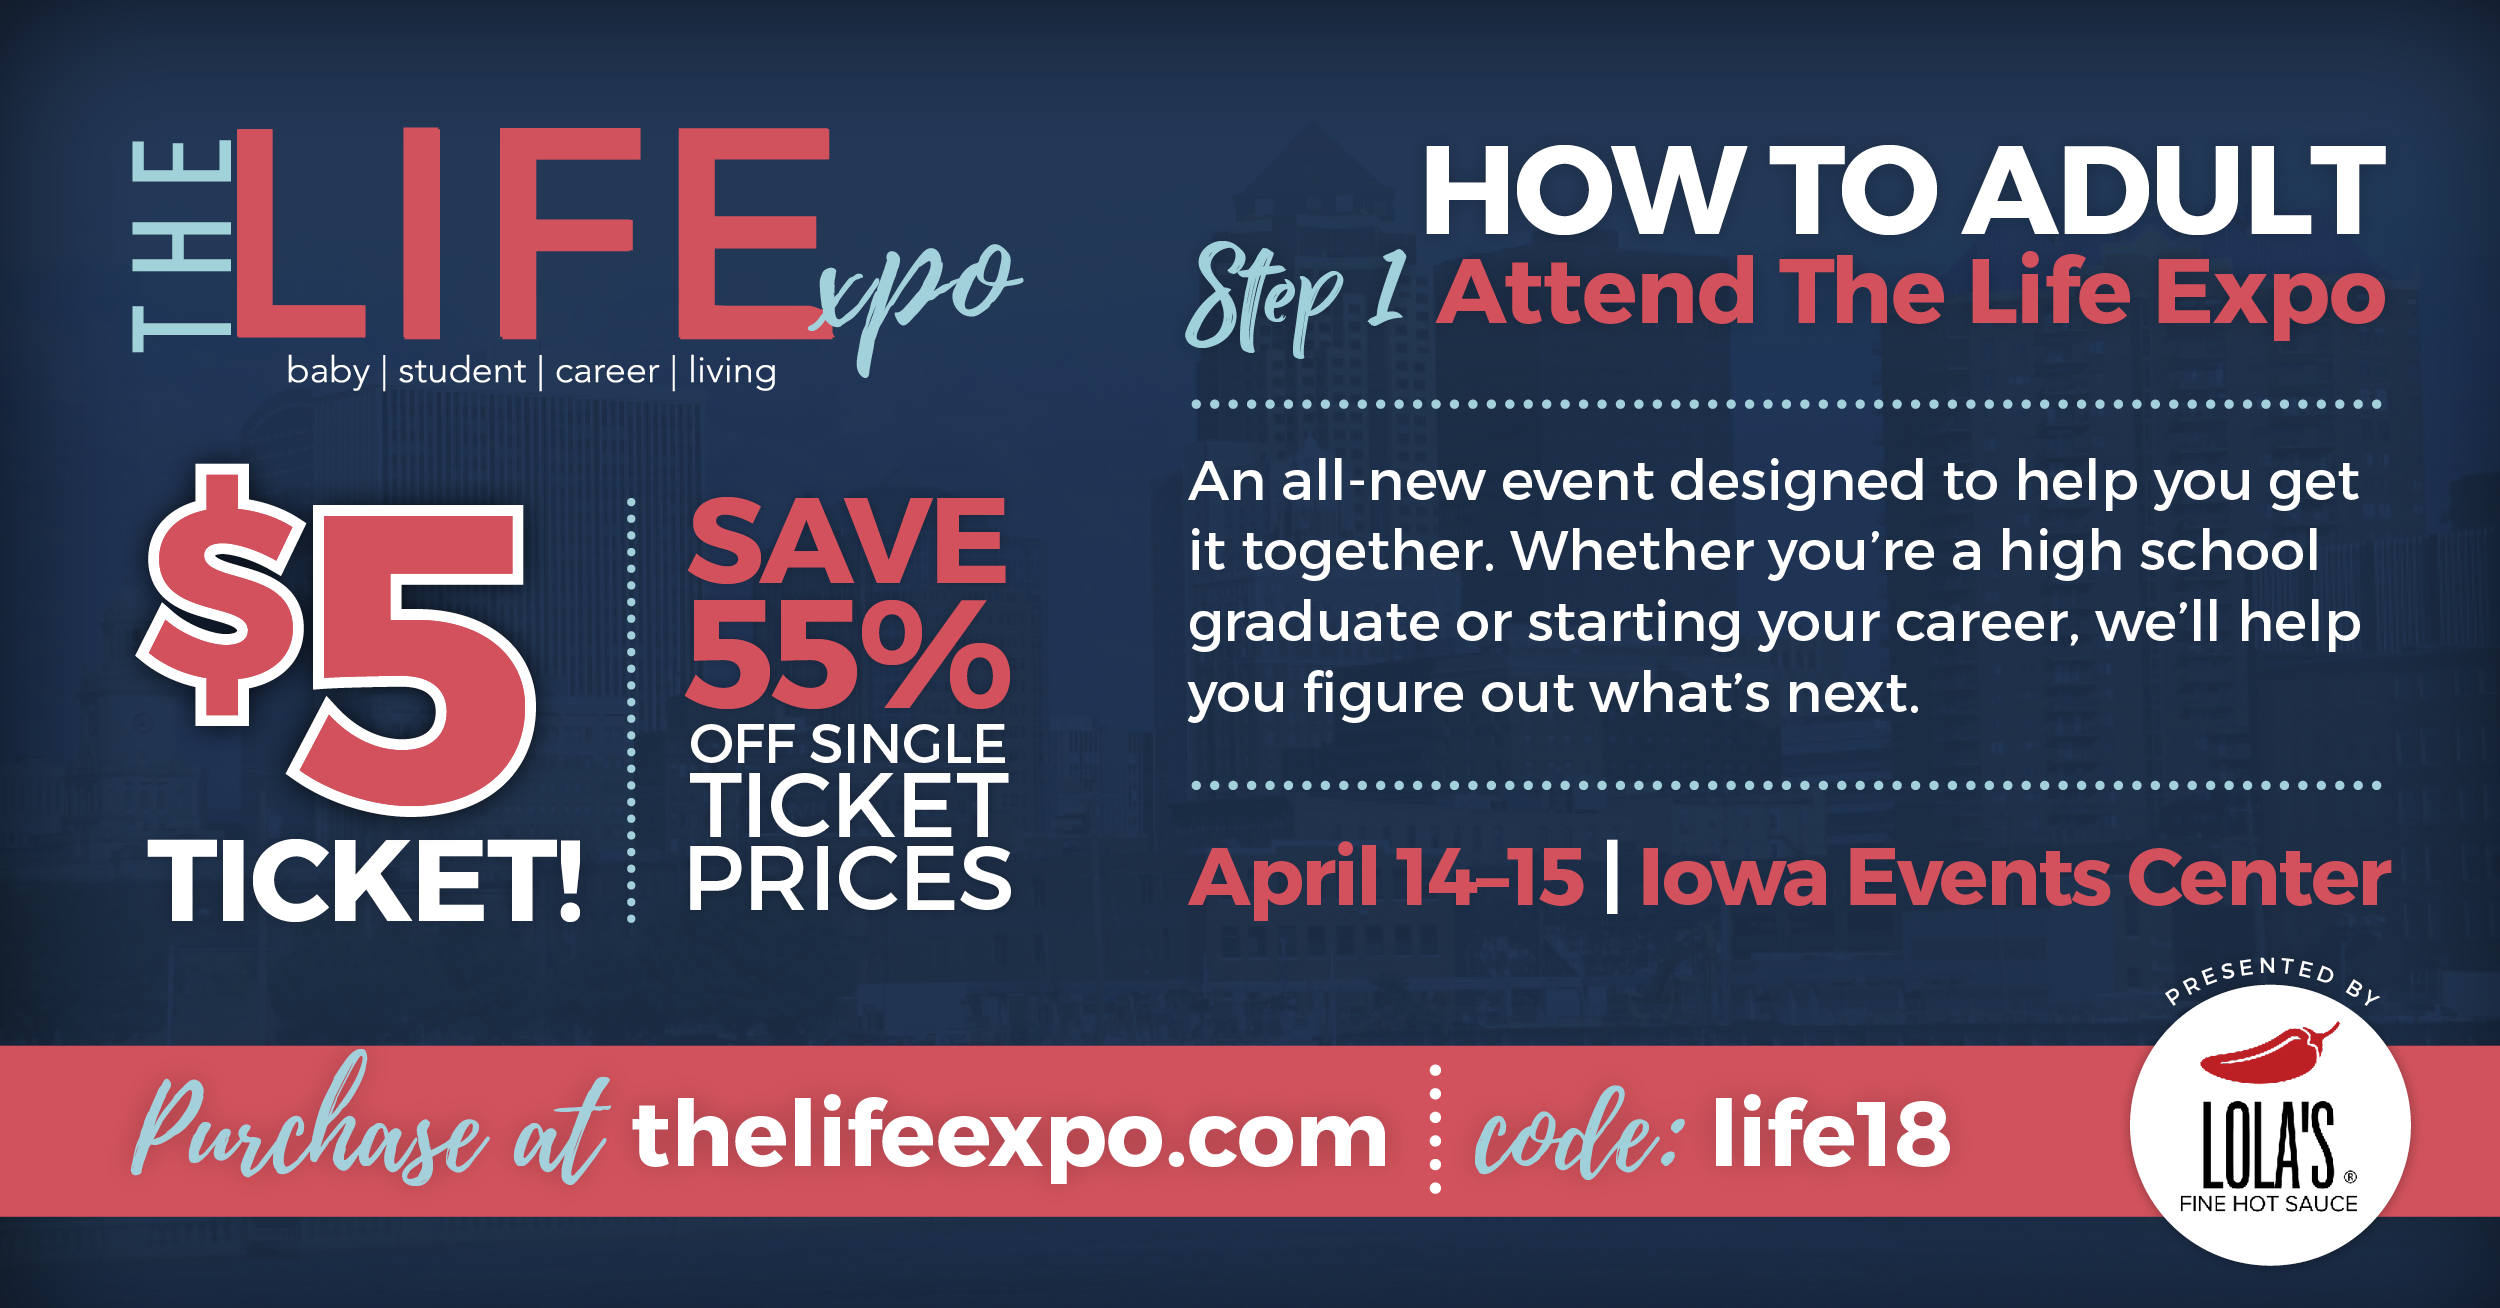 The Life Expo, Des Moines, Iowa, Iowa Event Center